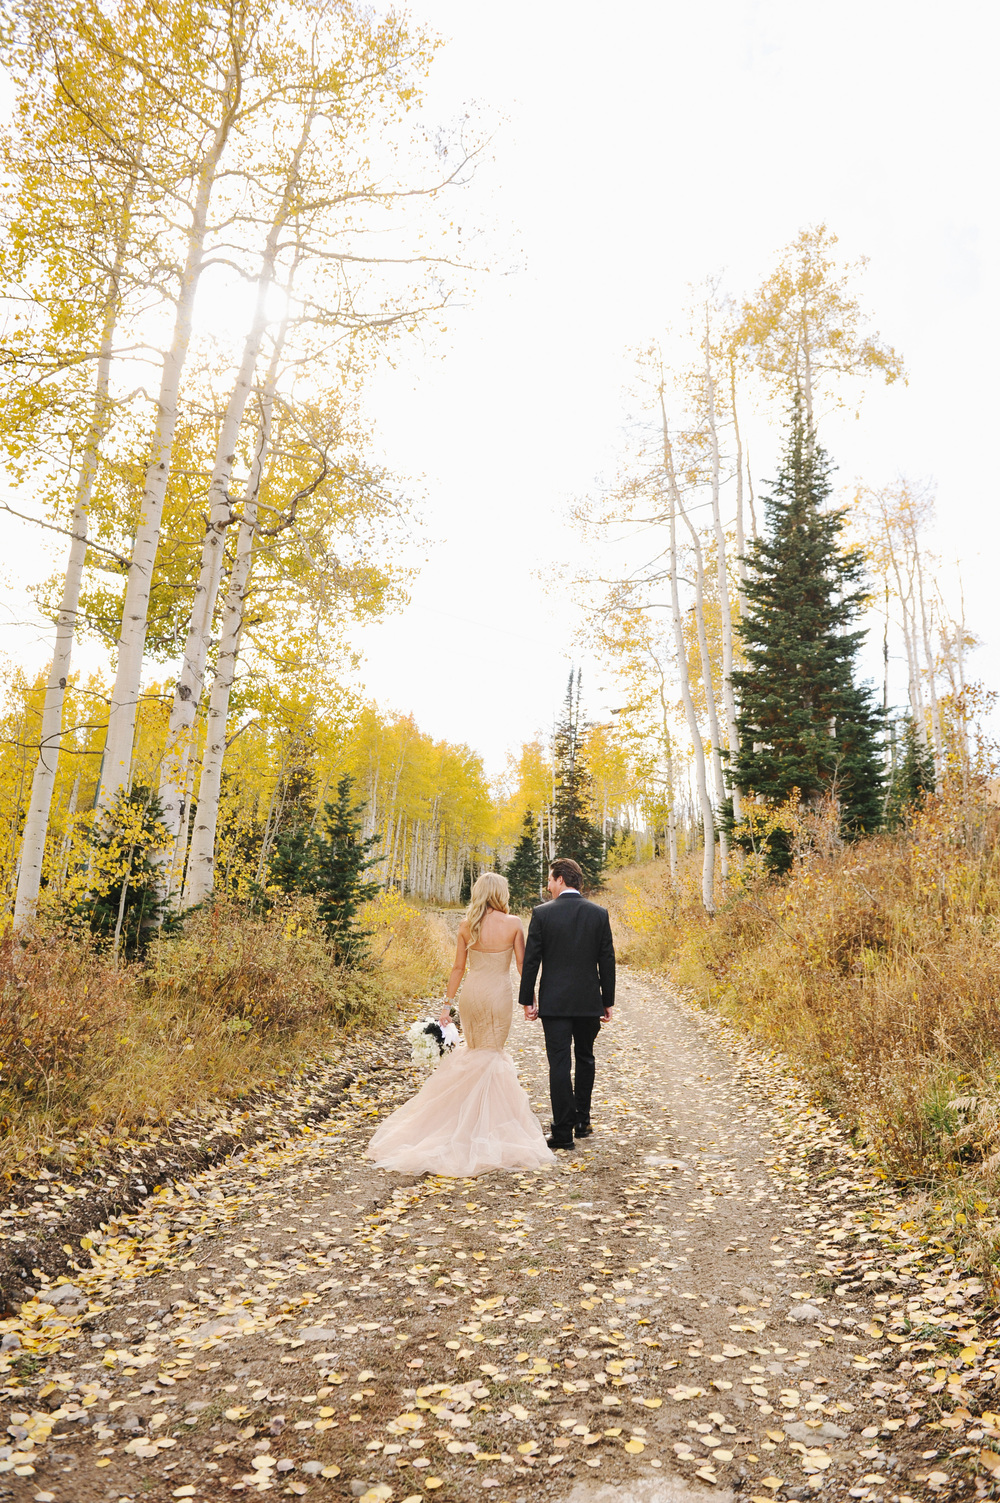 Cozy Autumn Wedding at Montage, Deer Valley | Michelle Leo Events | Utah Wedding Planning and Design | Photographed by Rebekah Westover